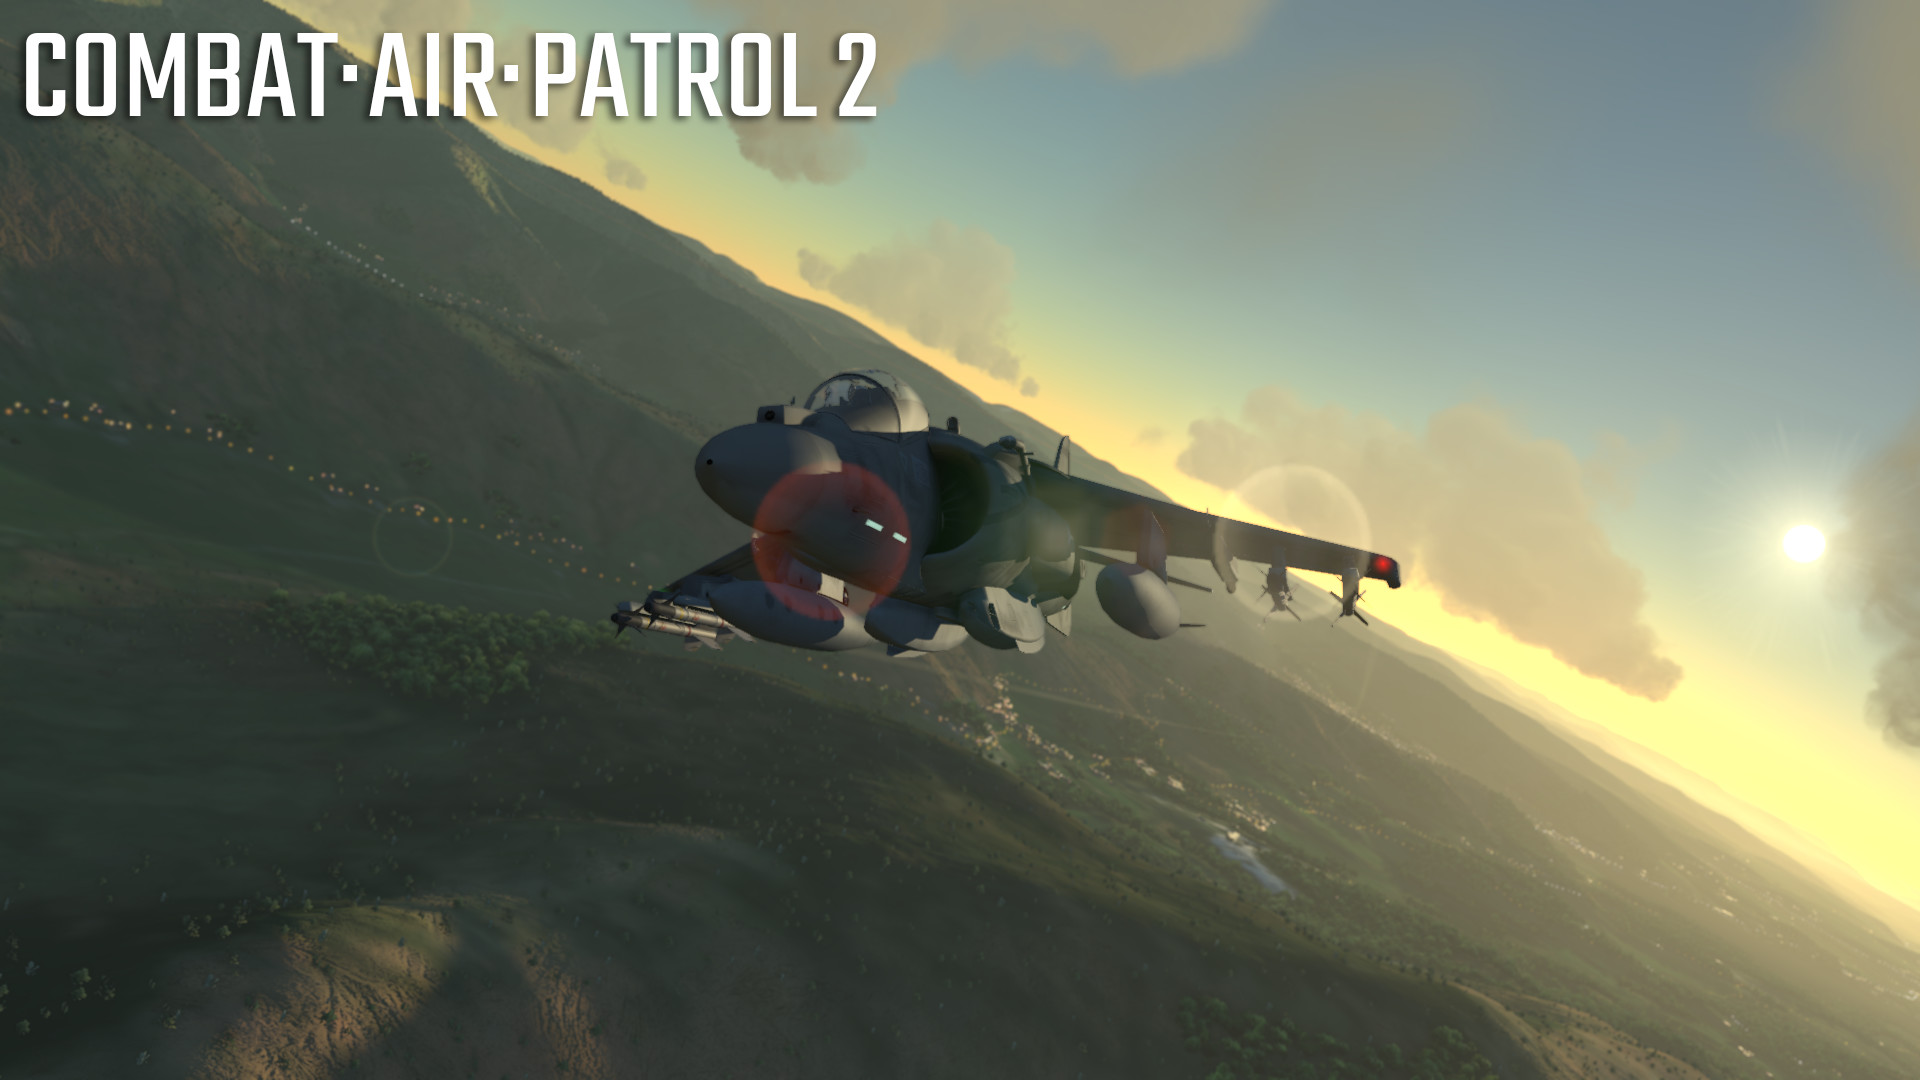 Combat Air Patrol 2 Download Free